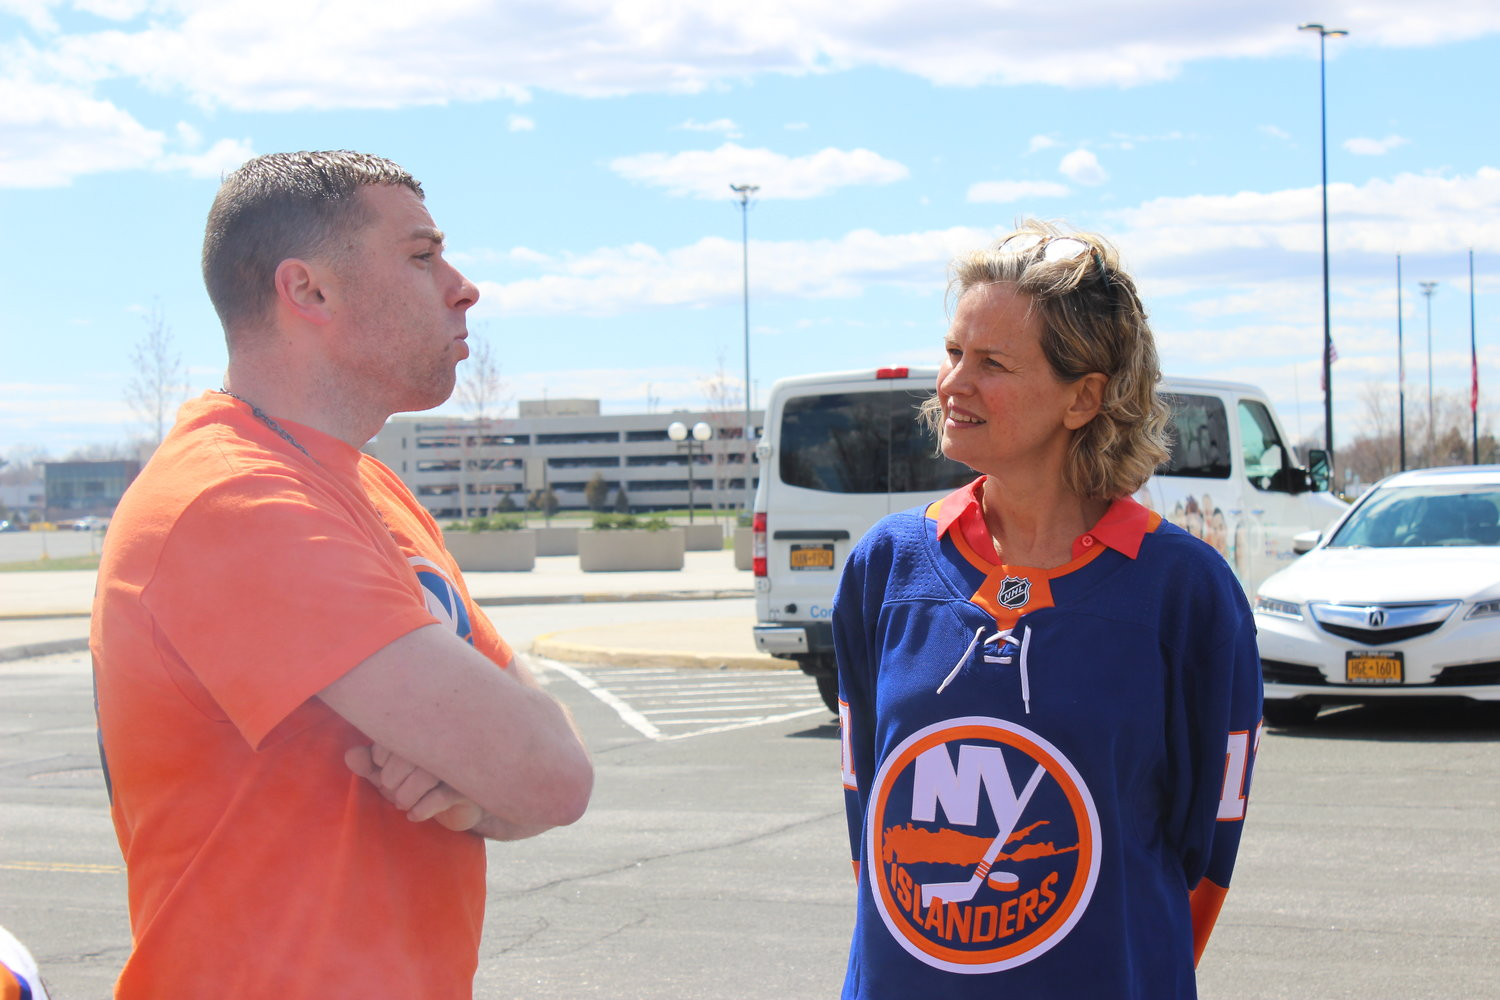 Before the New York Islanders played their first Stanley Cup playoff game at Nassau Coliseum, Nassau County Executive Laura Curran greeted tailgating fans like Louis Monteleone.